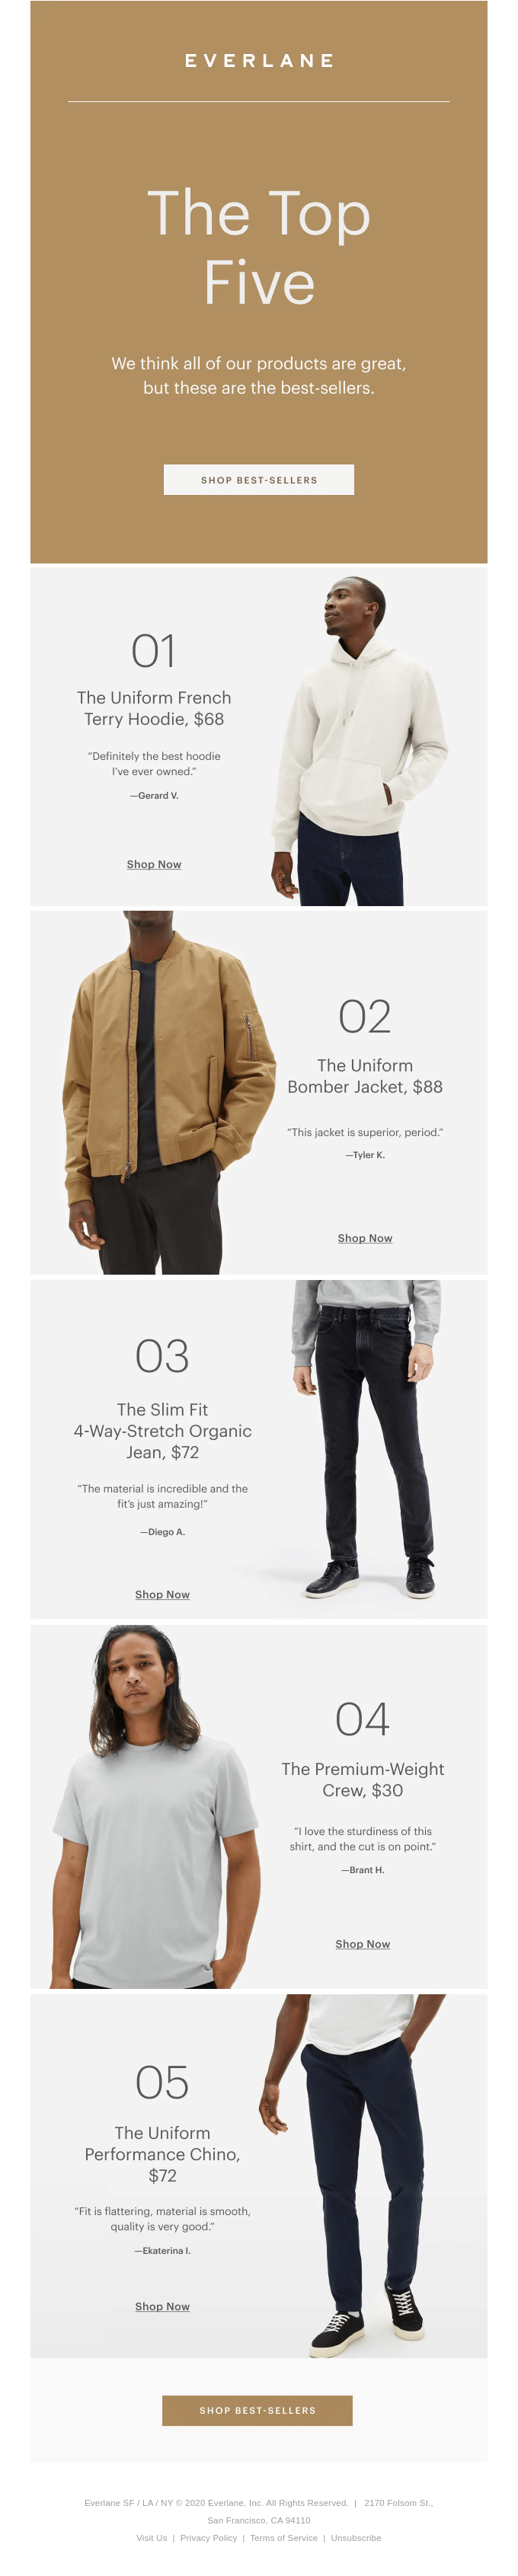 Our Top Five Best-Sellers